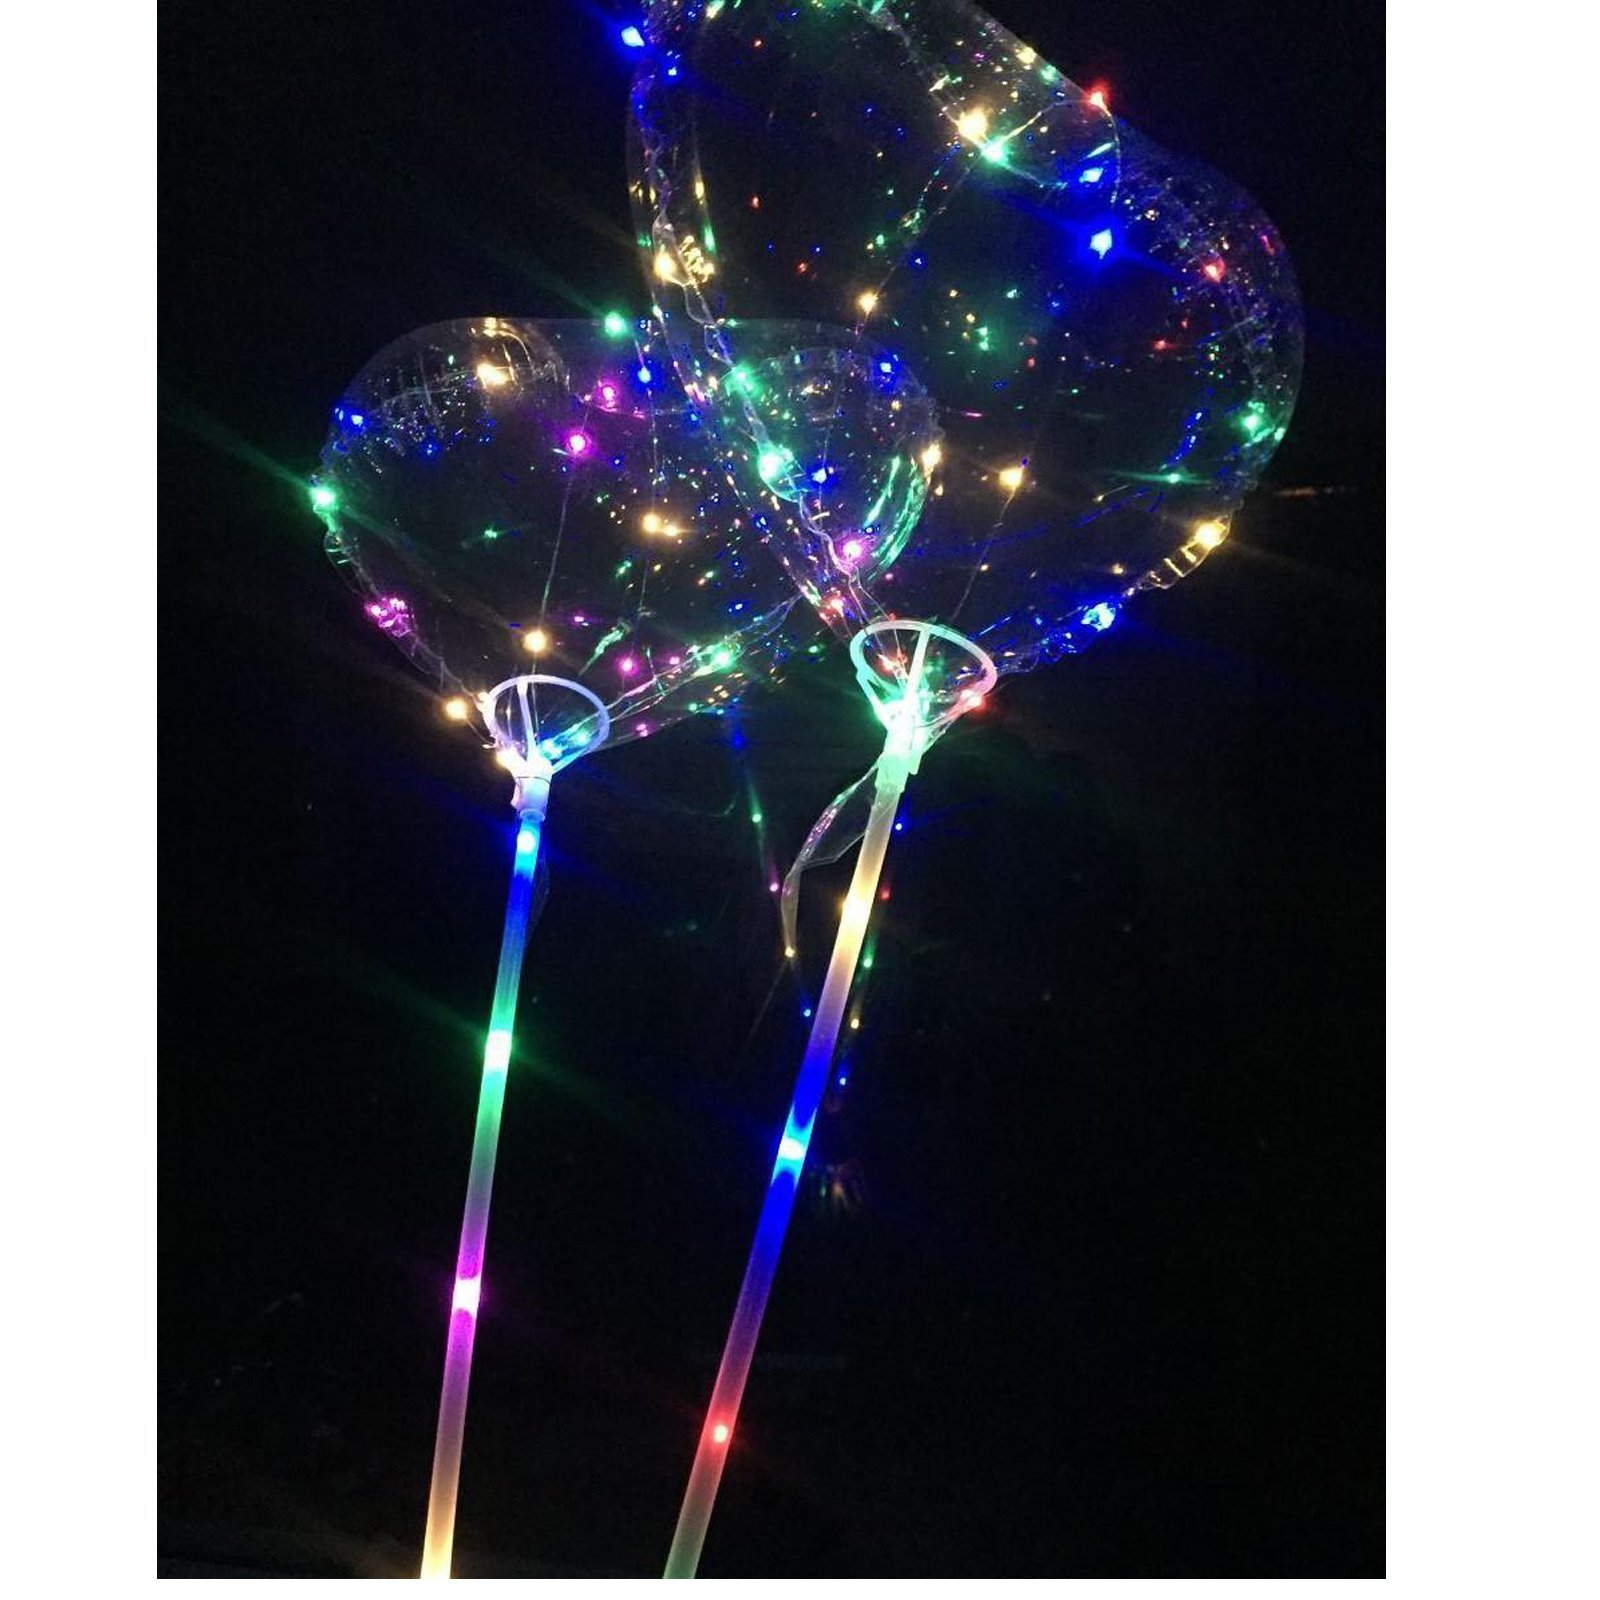 LED Light Up Heart Shape Balloons, Reusable with extension rod and support cup holder, Perfect for Birthday,Wedding, Holiday, Special Occasion and Event Decoration (50)